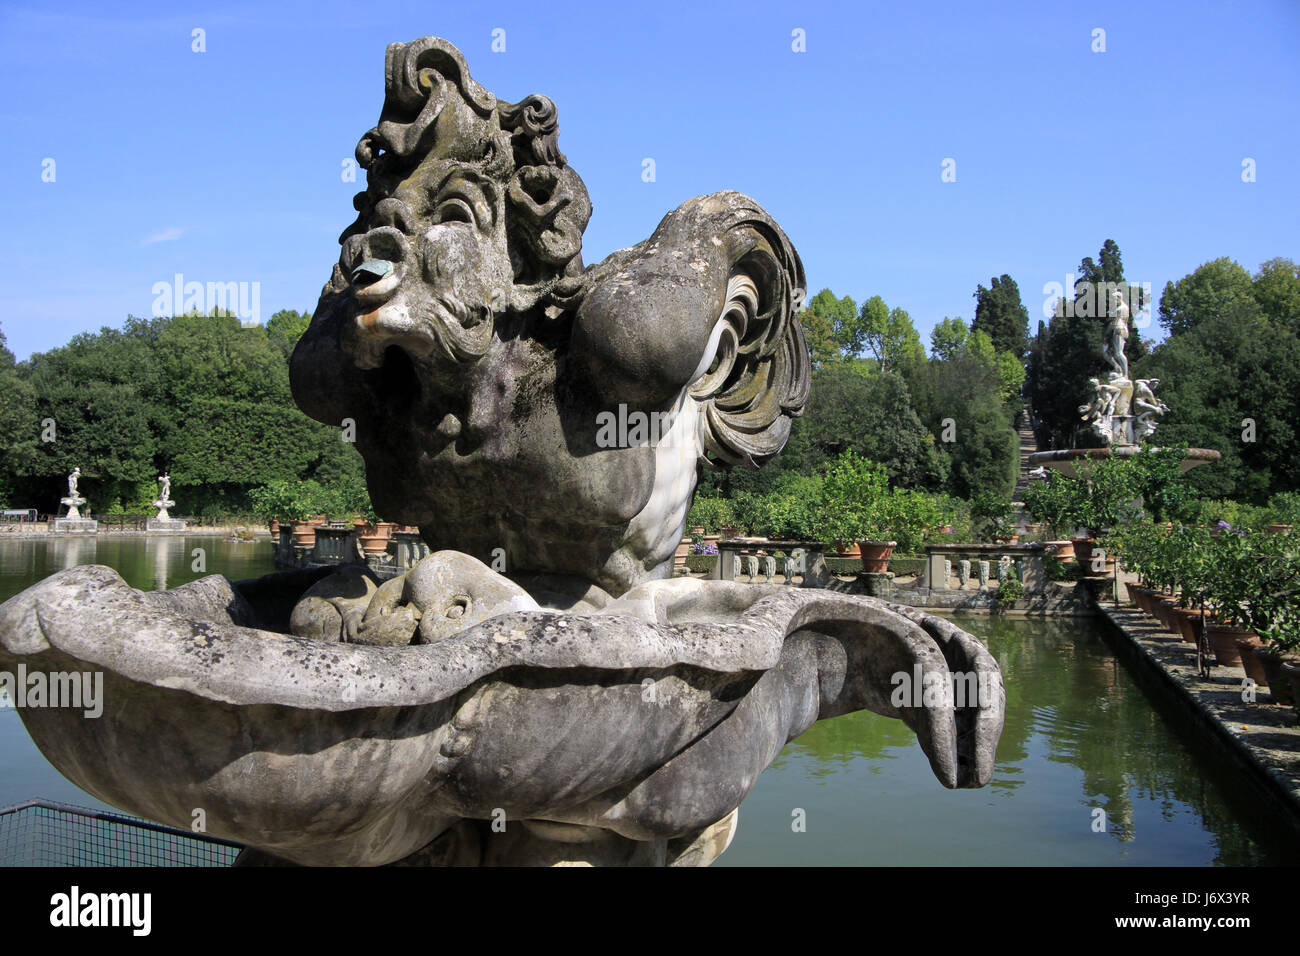 Marble Statues In The Boboli Gardens In Florence   Stock Image